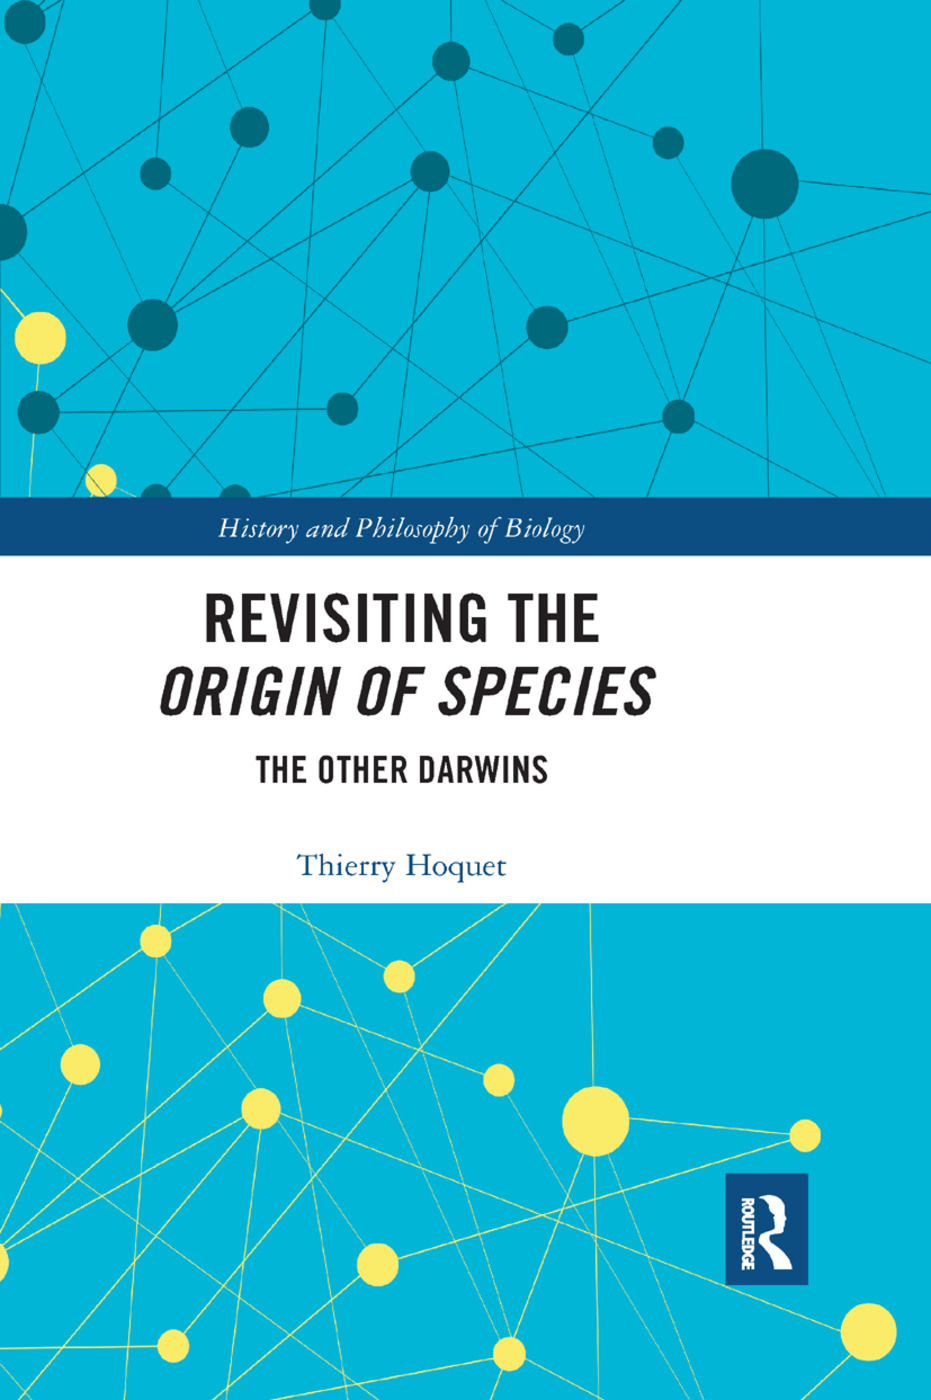 Revisiting the Origin of Species: The Other Darwins book cover